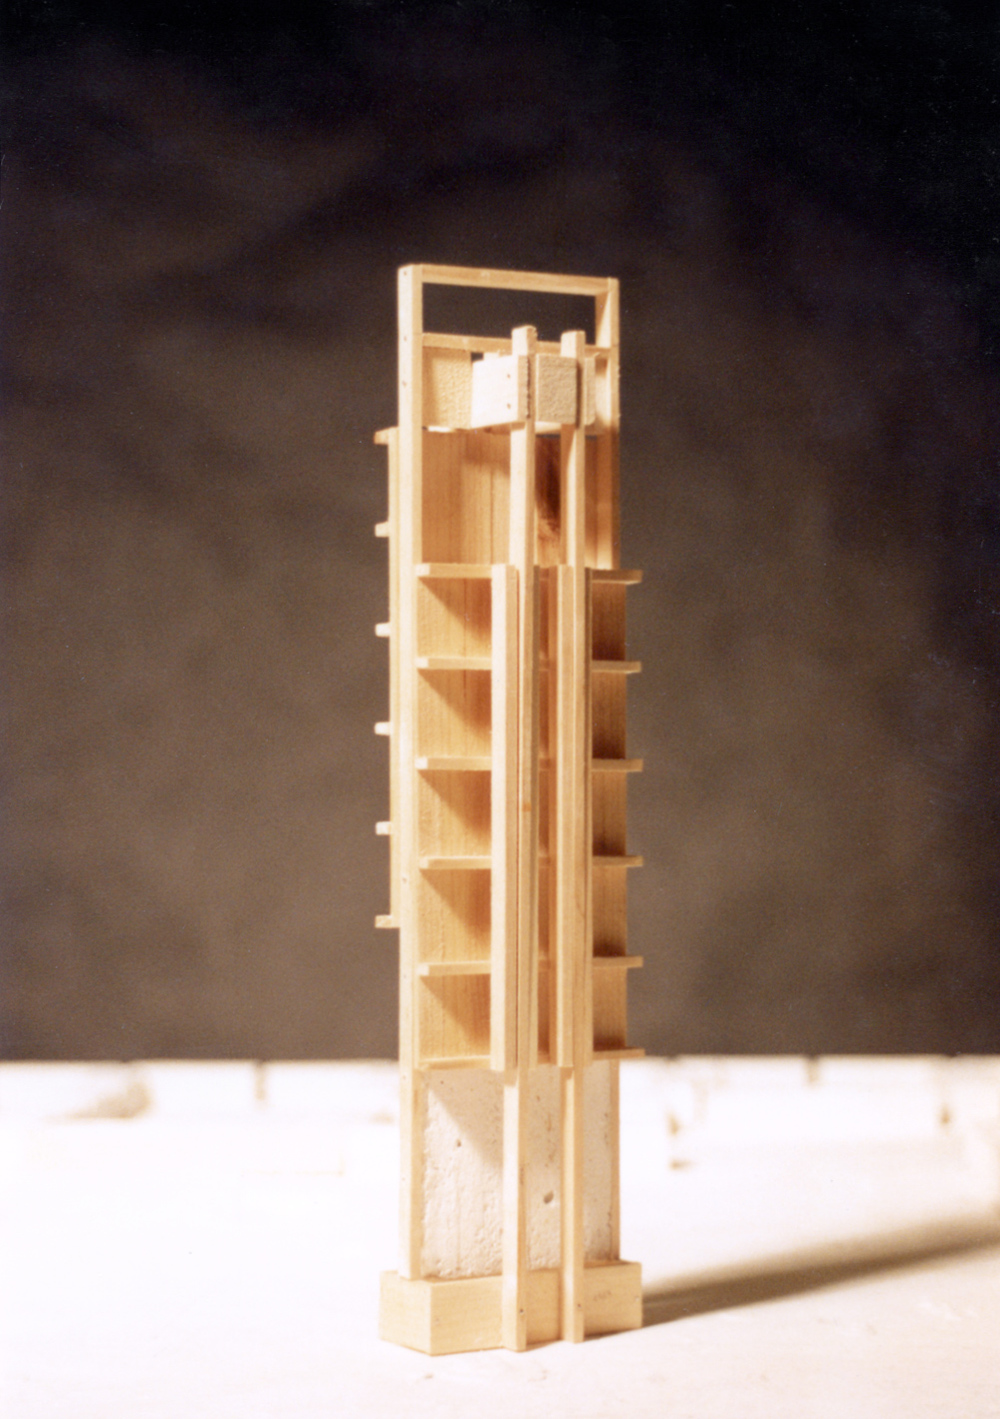 UPenn Integrated Design Thesis: Wood and Plaster Experiment 1. 1992